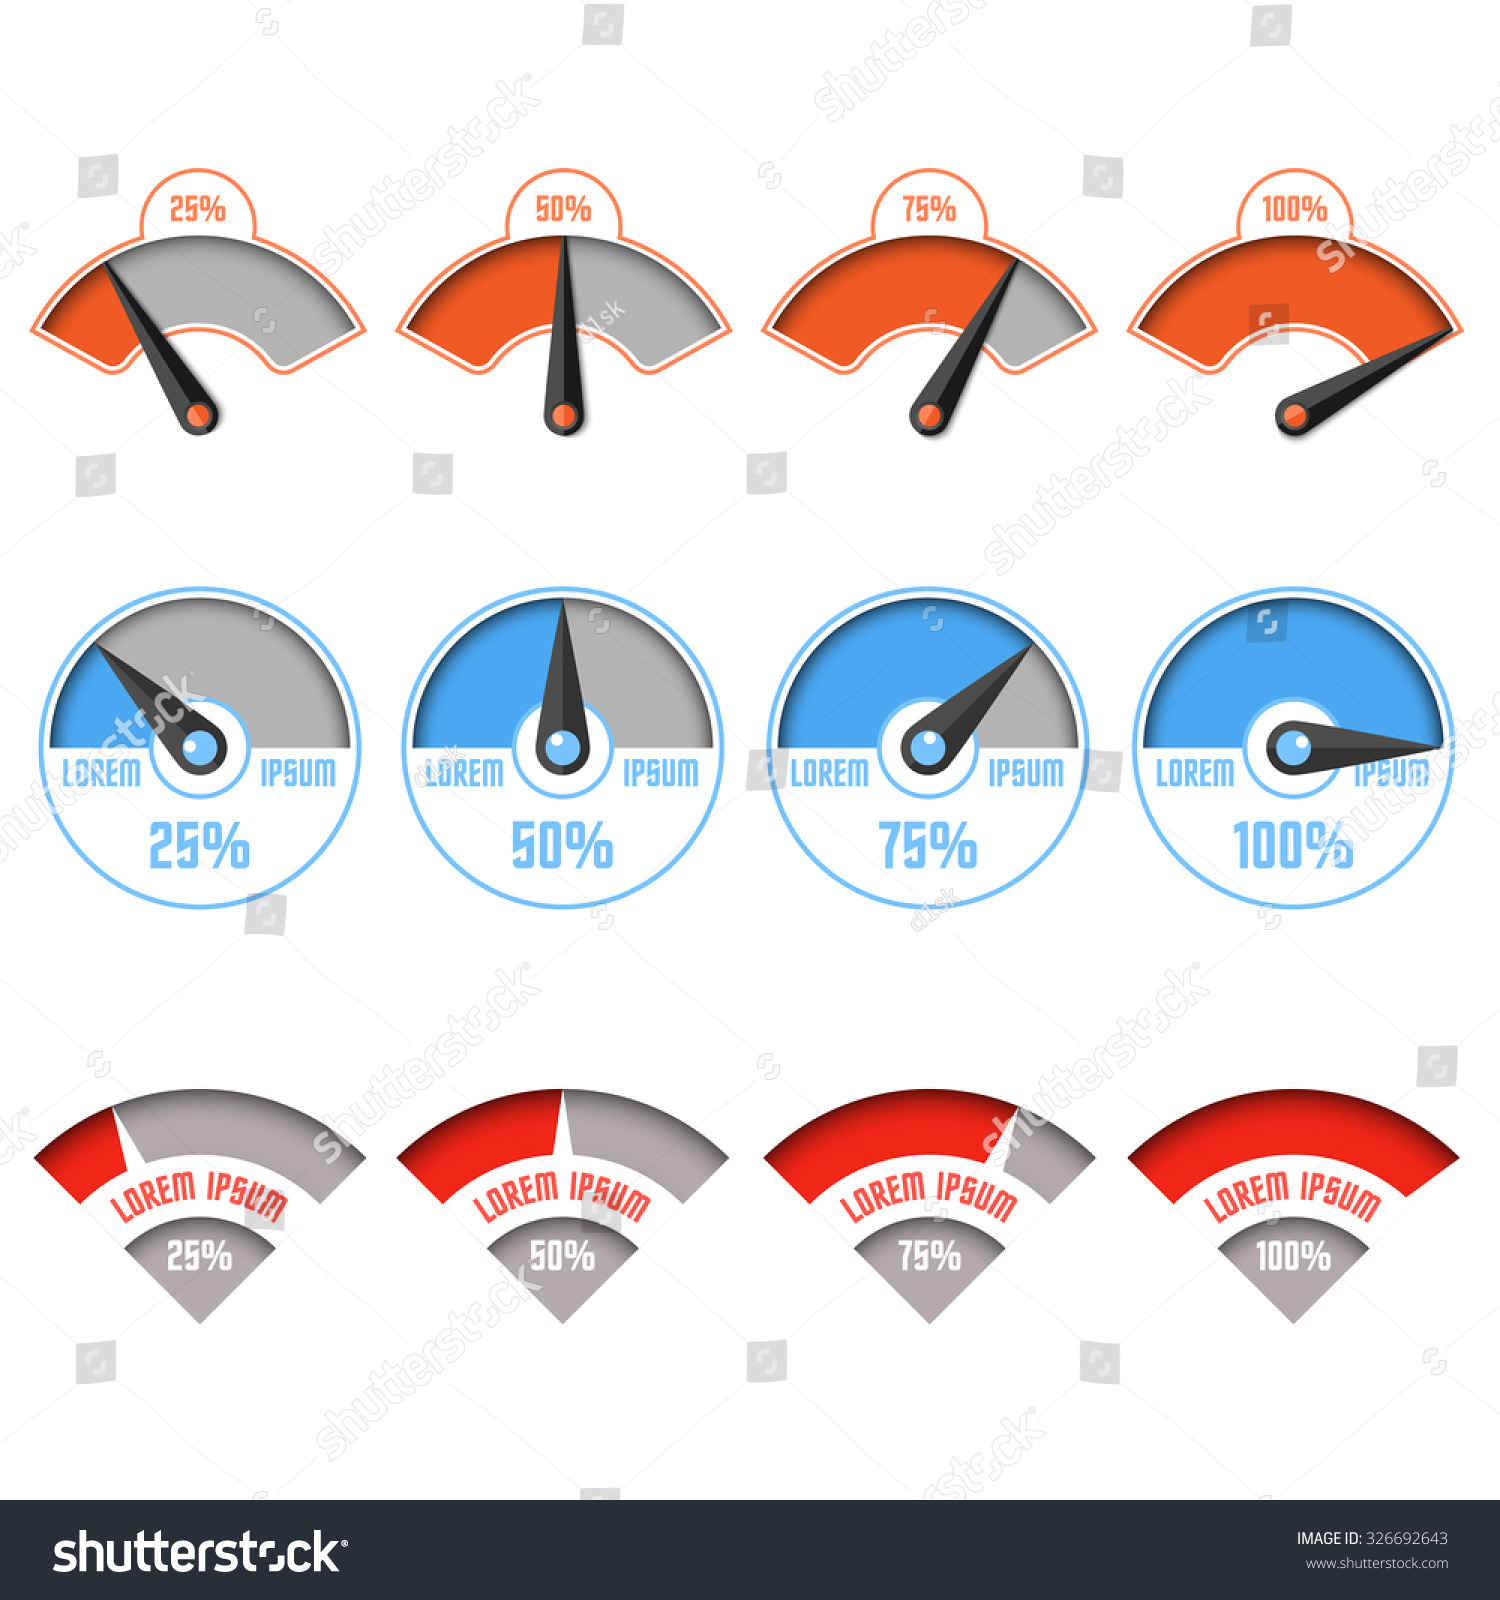 100 [ powerpoint dashboard gauges incineration waste disposal diagram, Powerpoint templates